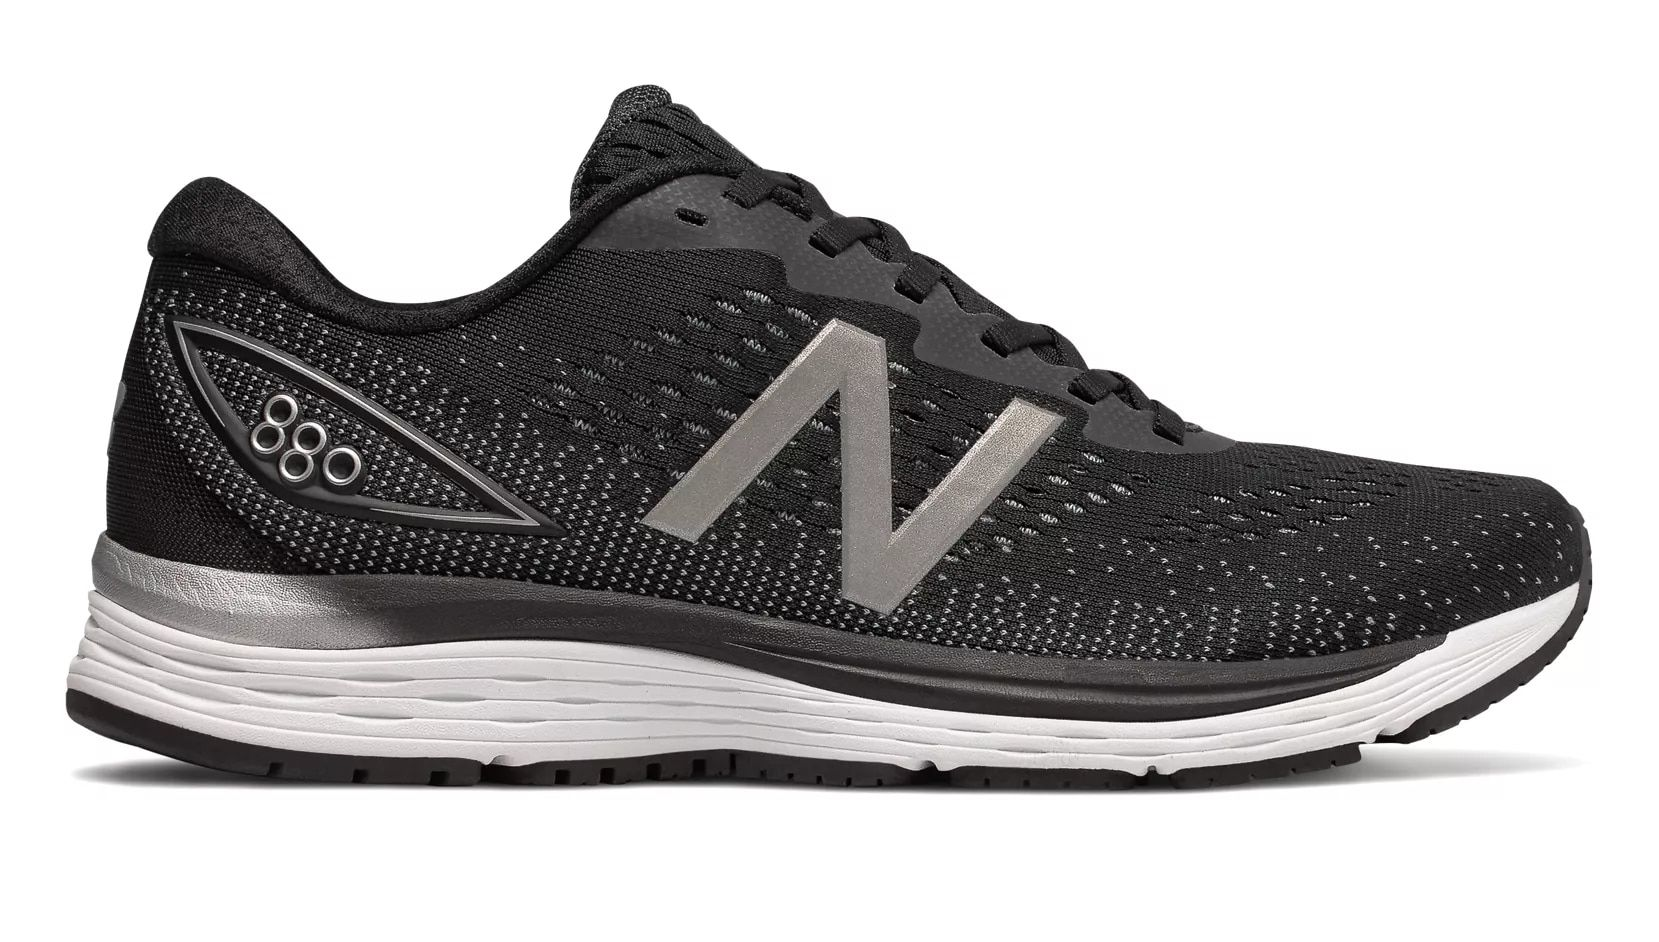 New Balance 880v9 in Schwarz